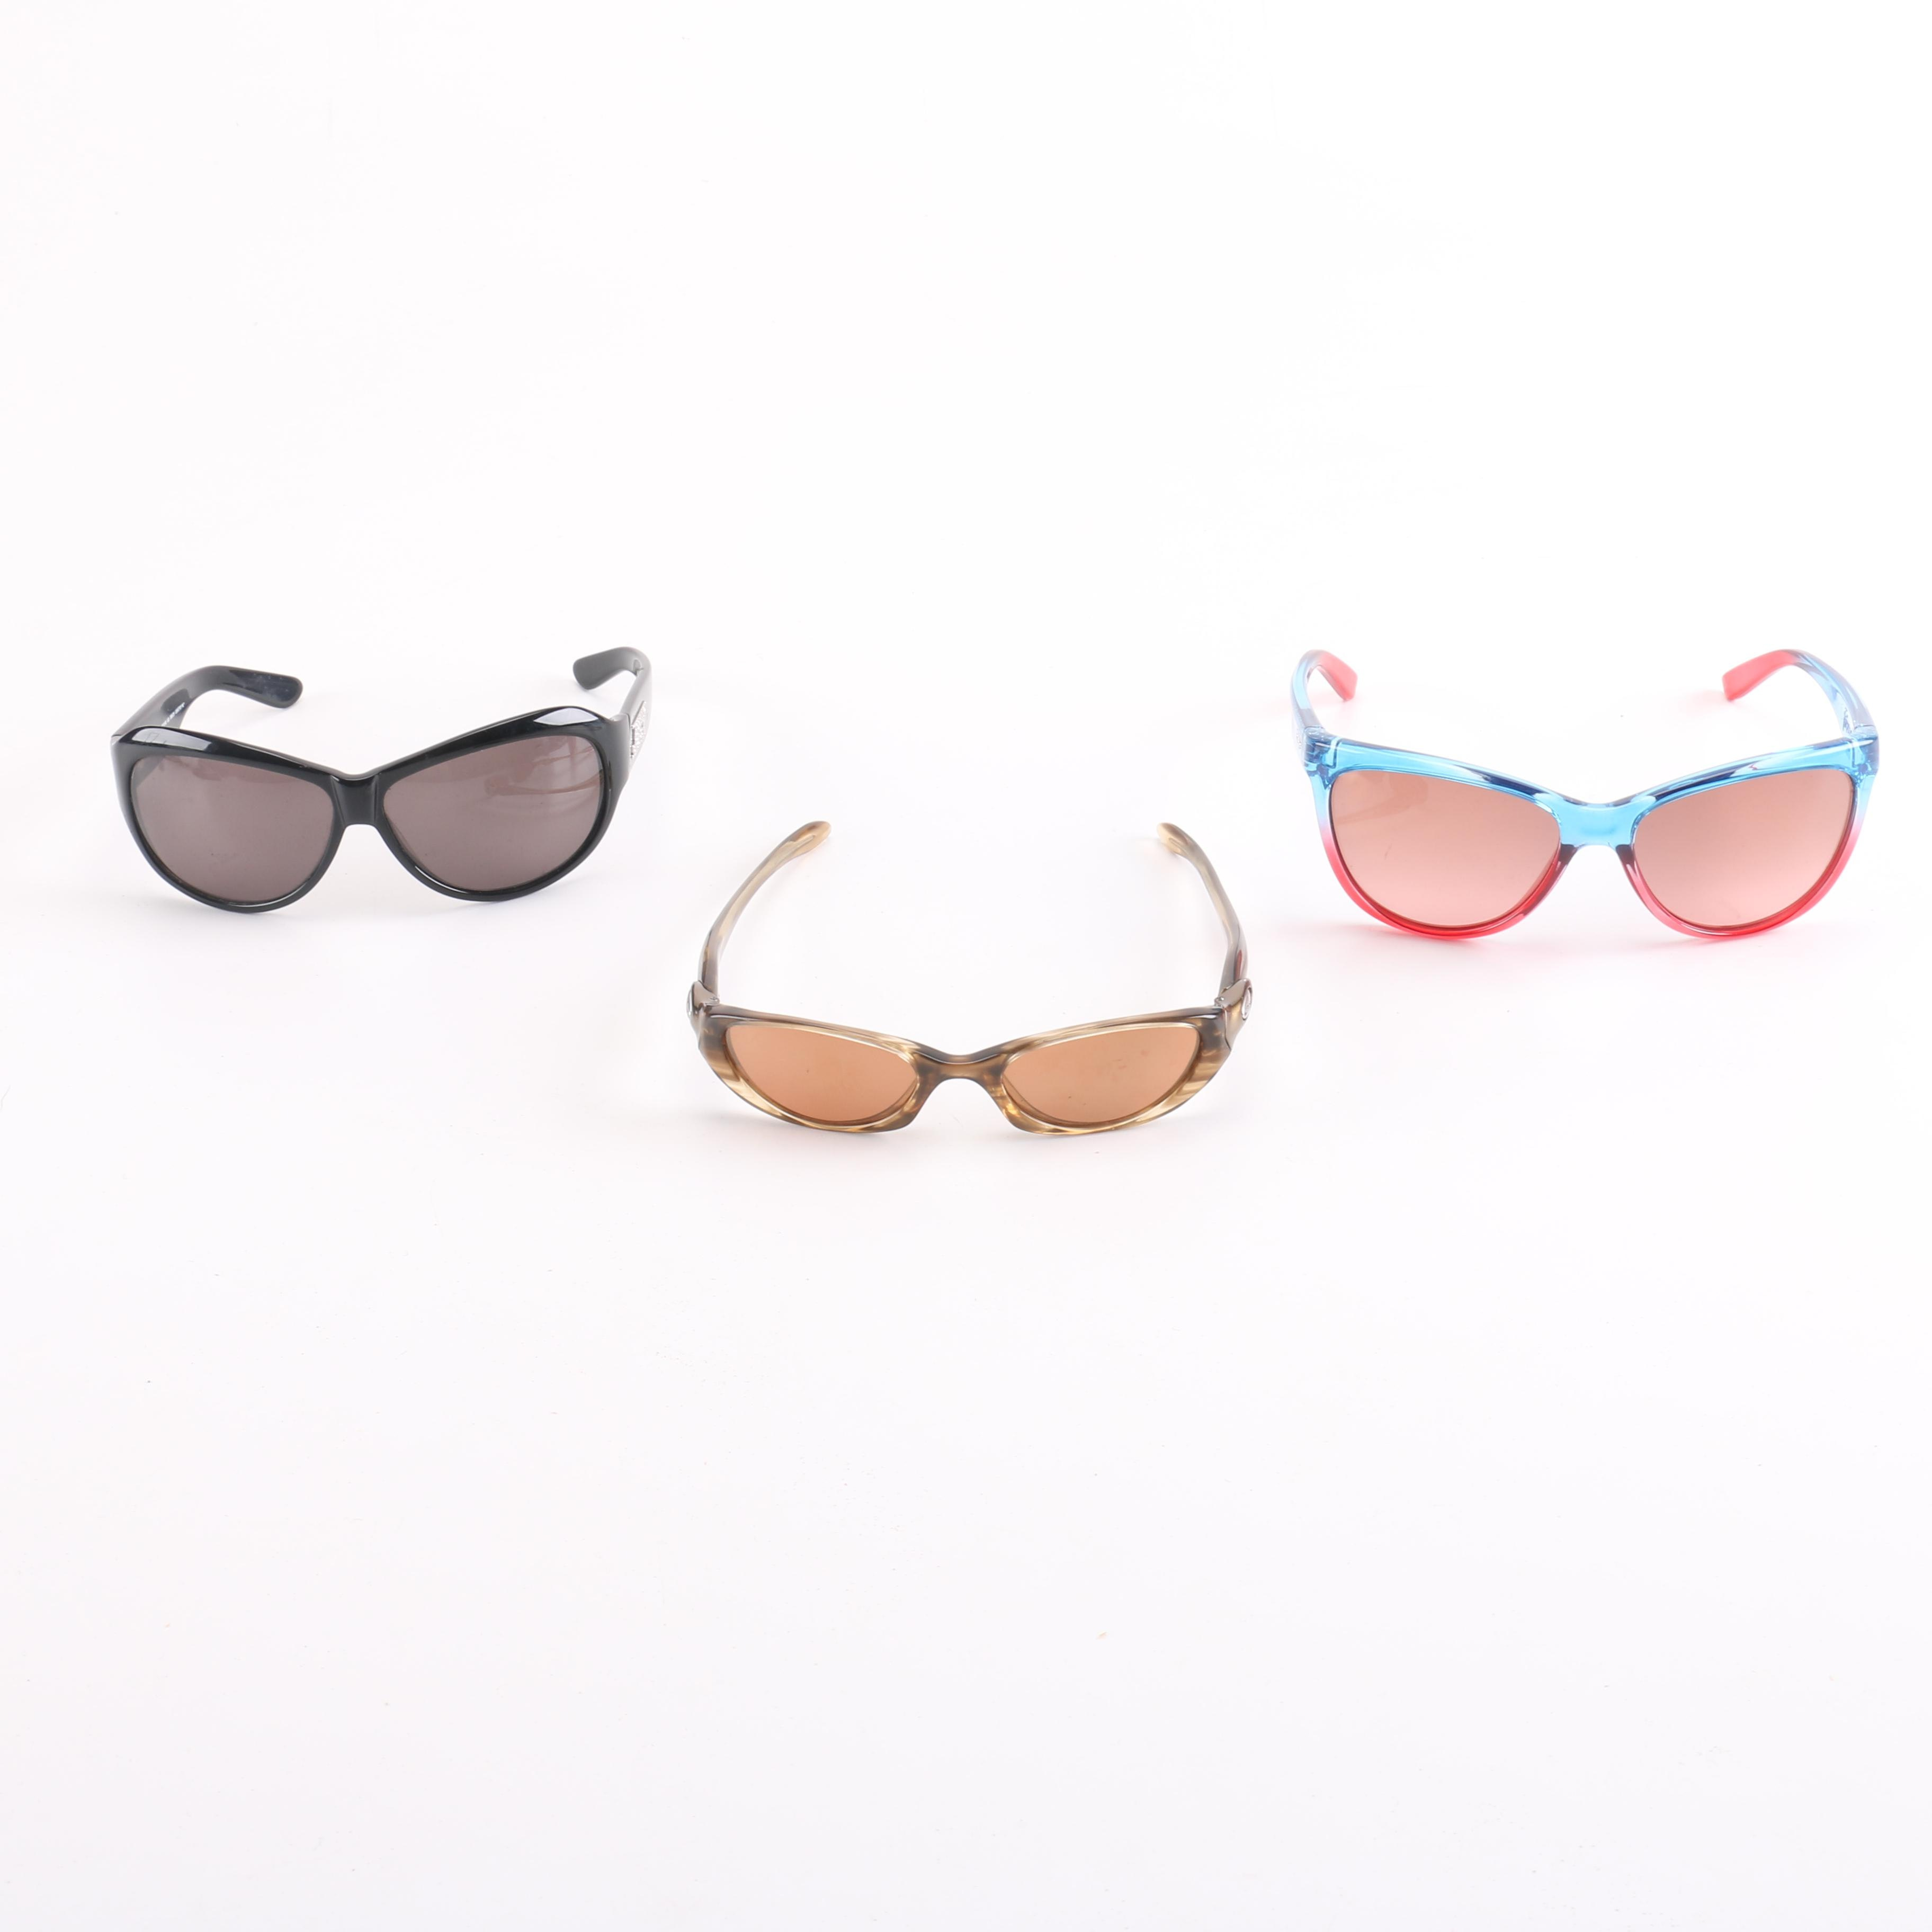 Selection of Sunglasses Including Oakley and Juicy Couture